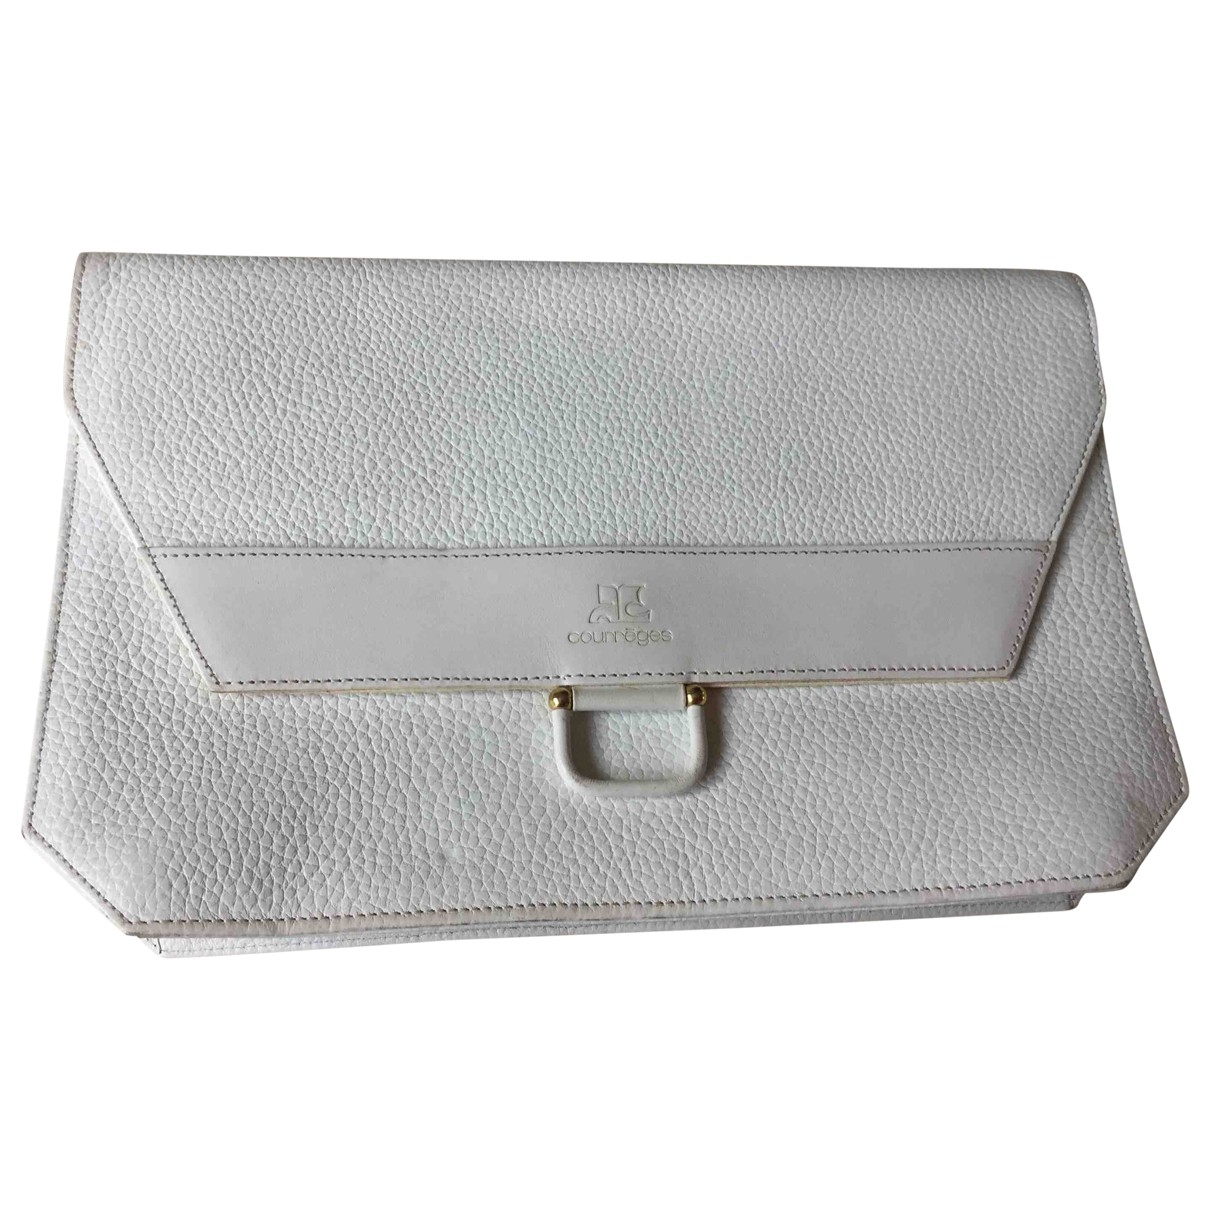 Courreges \N Clutch in  Weiss Leder